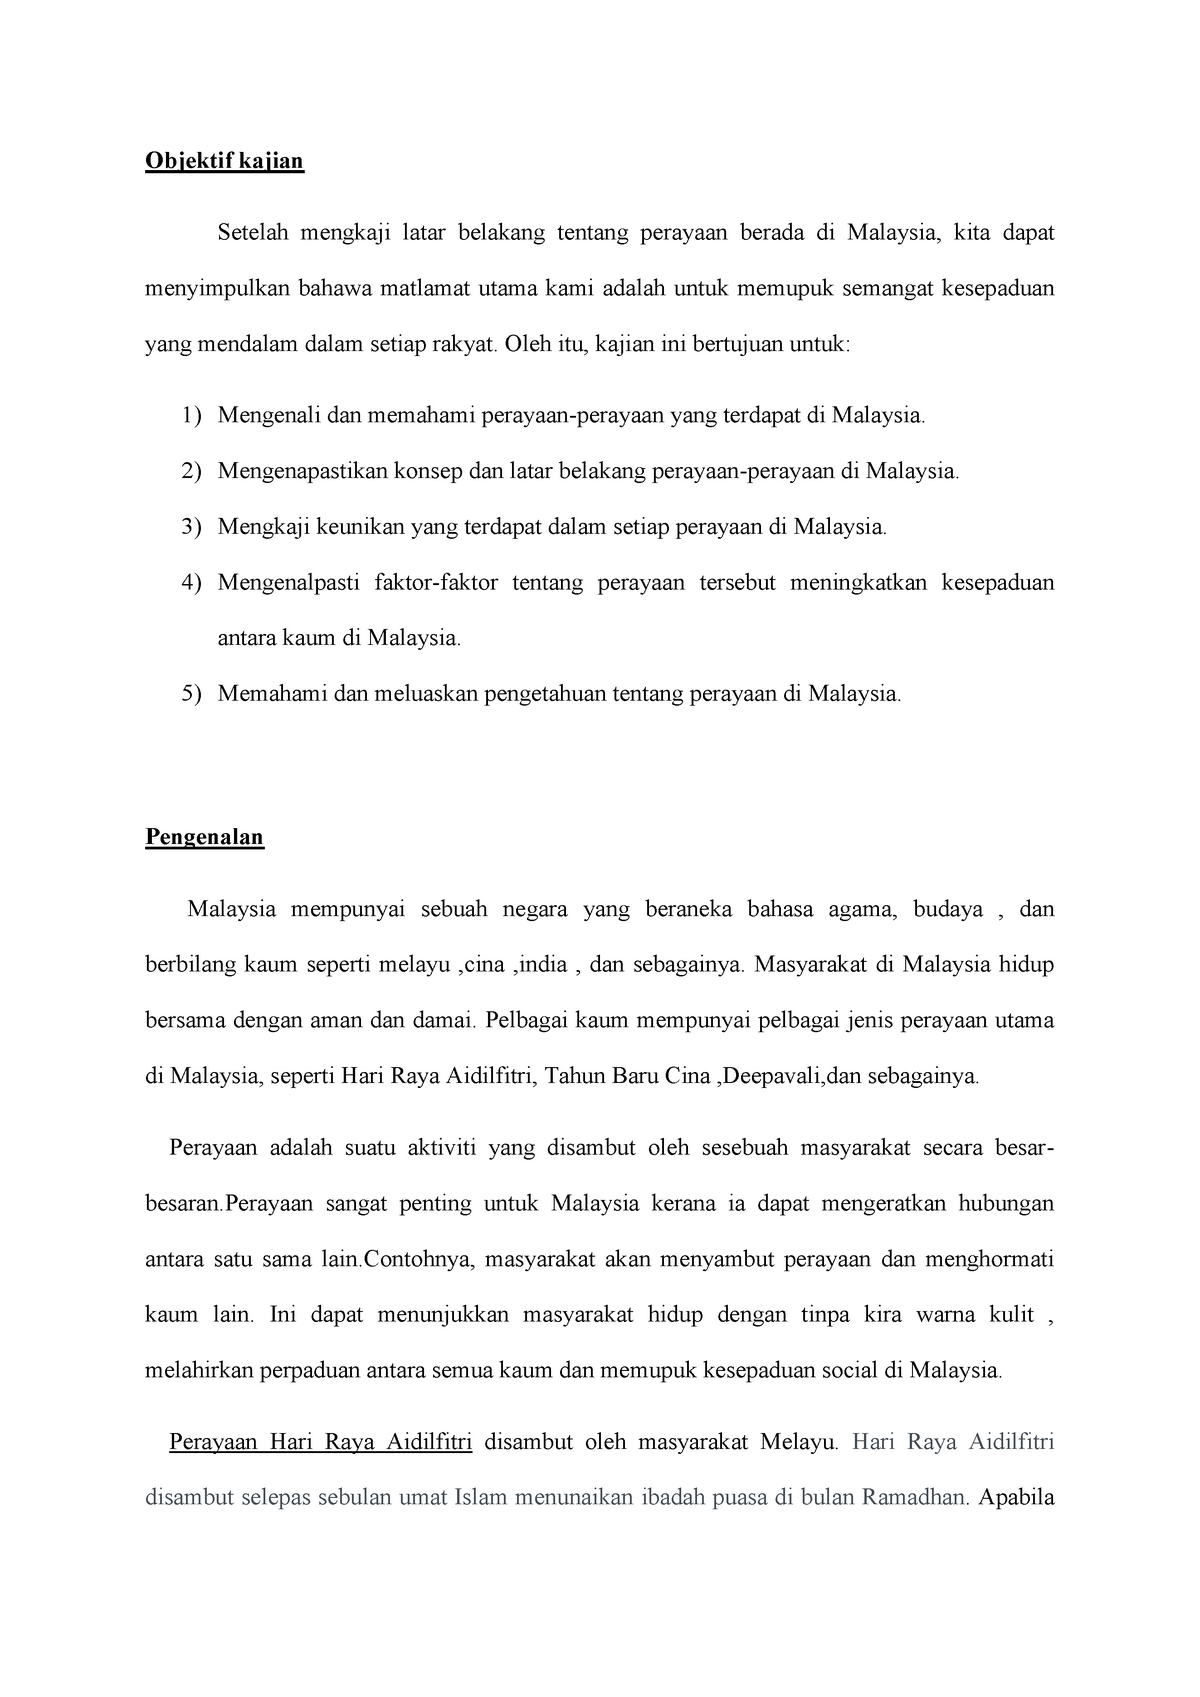 He Multiracial Complete Assignment Report For The Subject Mpu3113 Hubungan Etnik About The Studocu